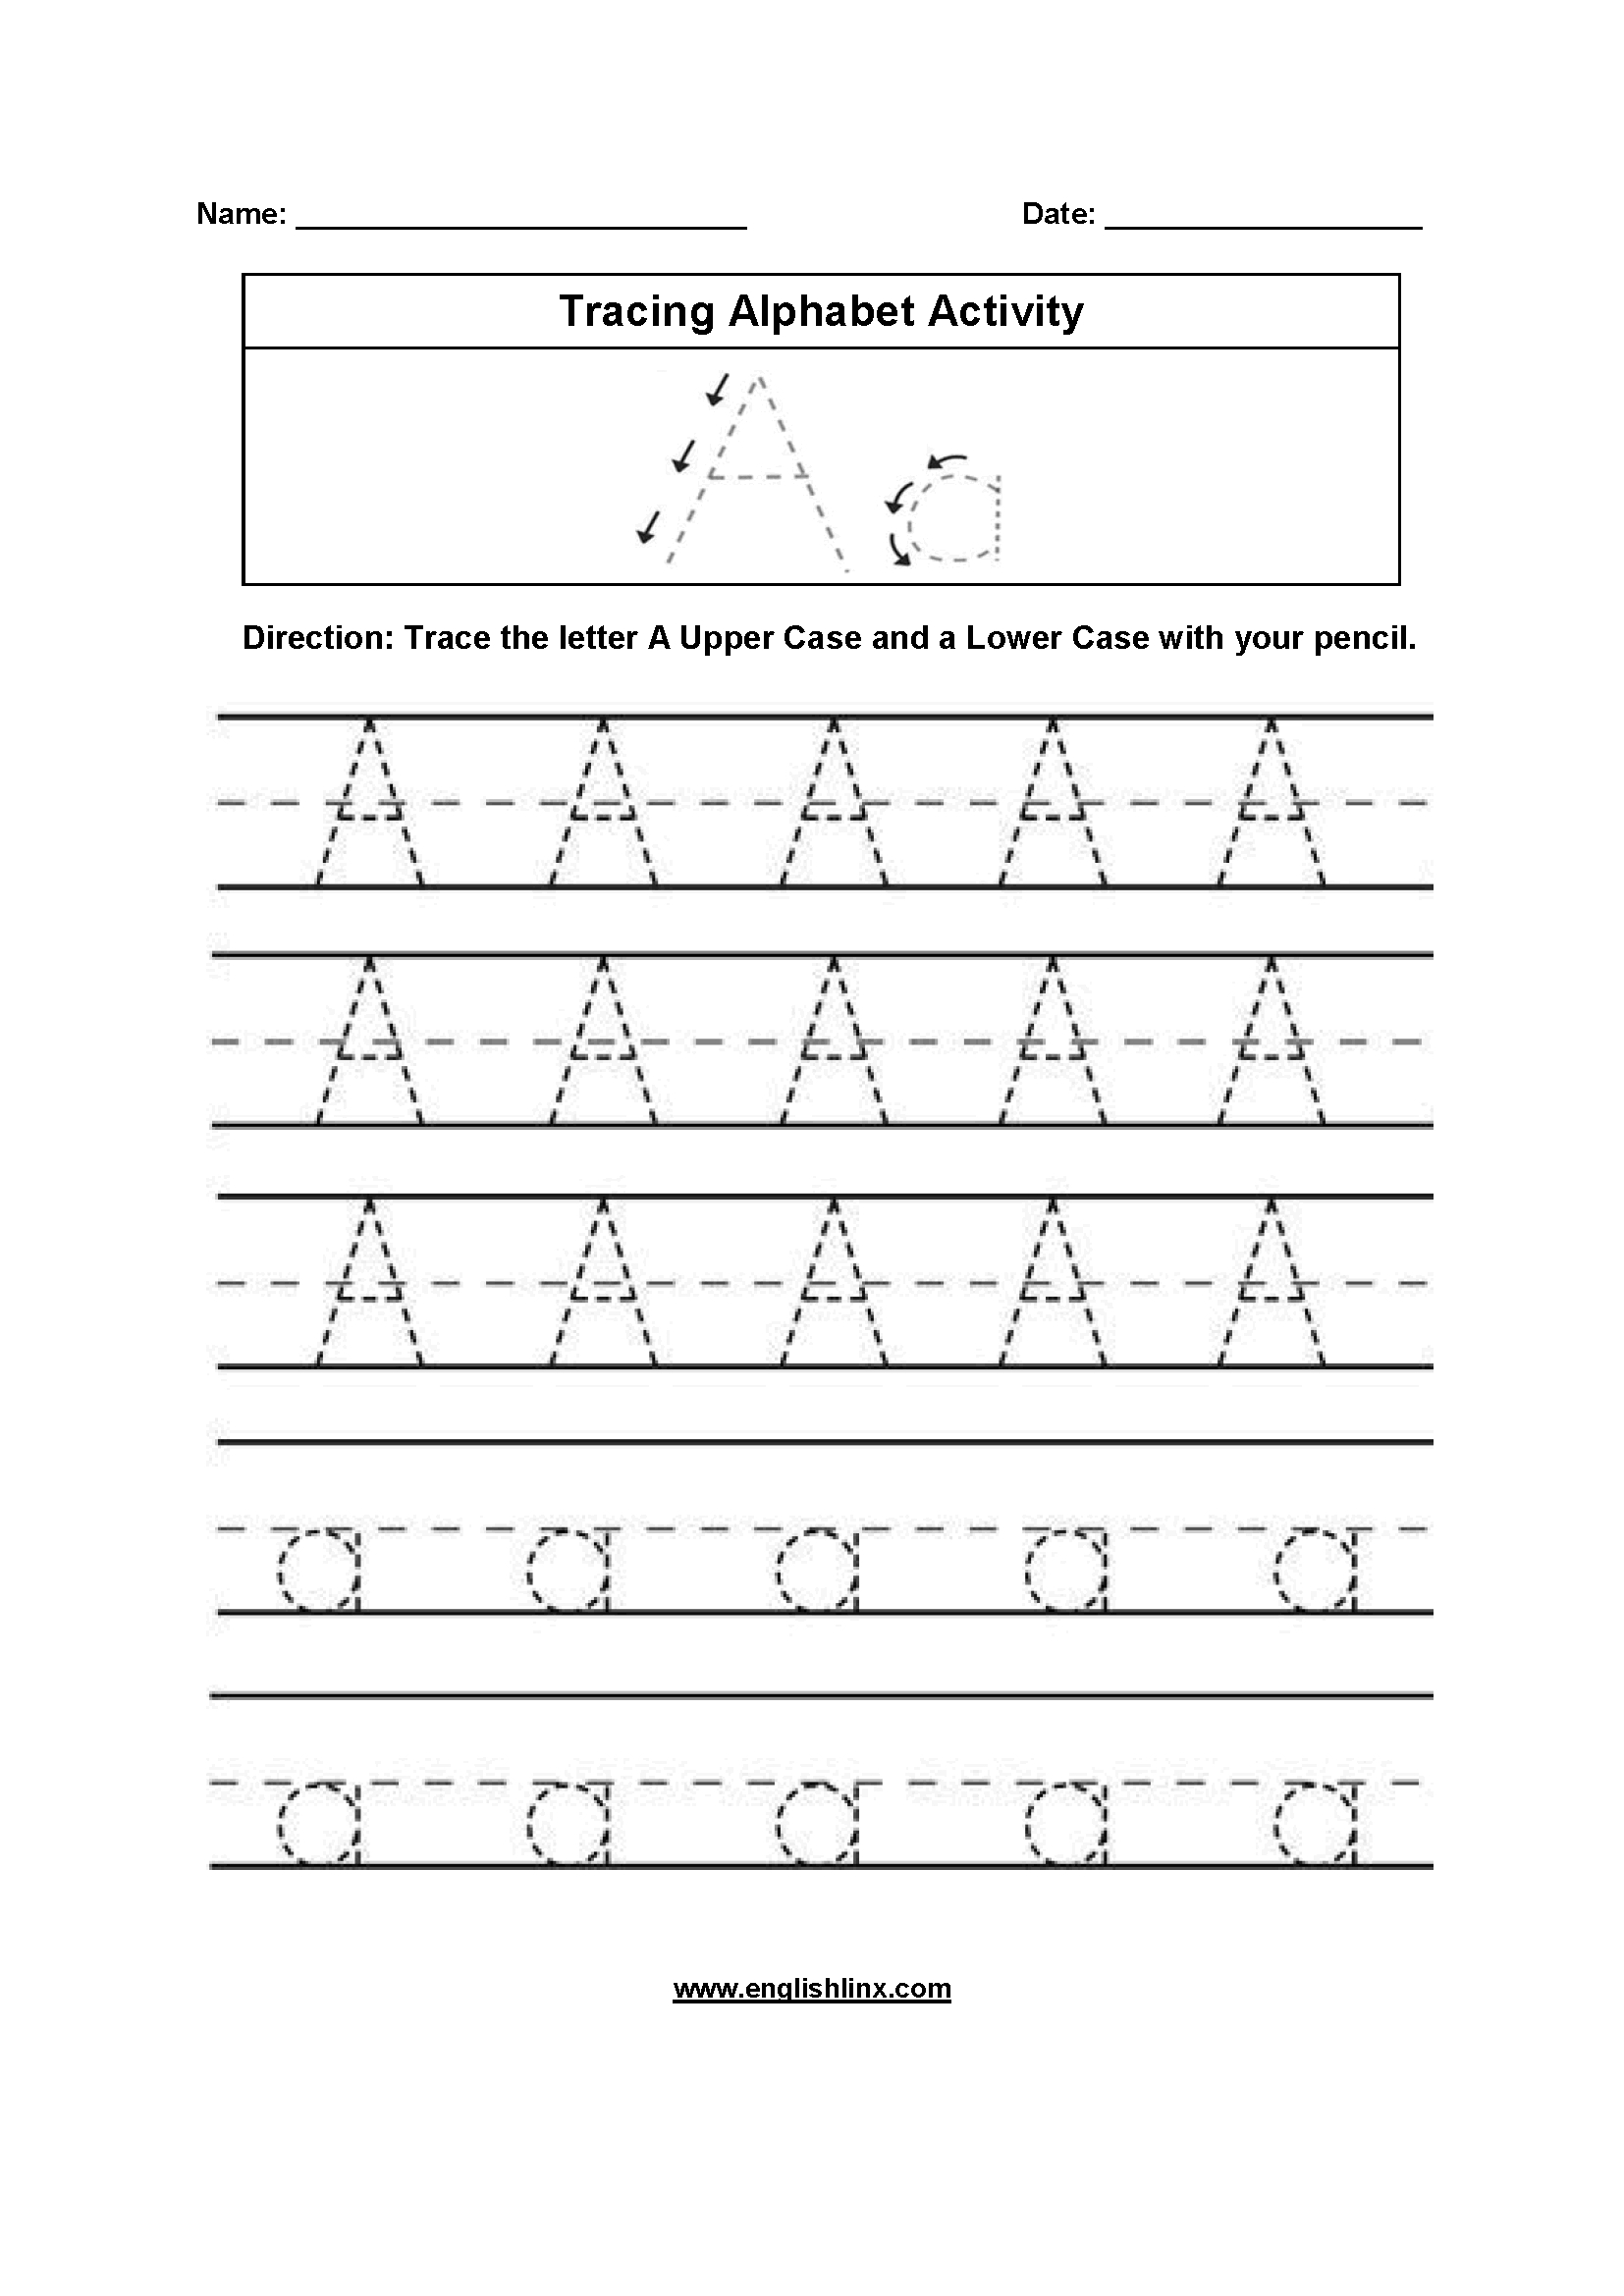 Alphabet Worksheets | Tracing Alphabet Worksheets intended for Alphabet Worksheets A-Z Pdf